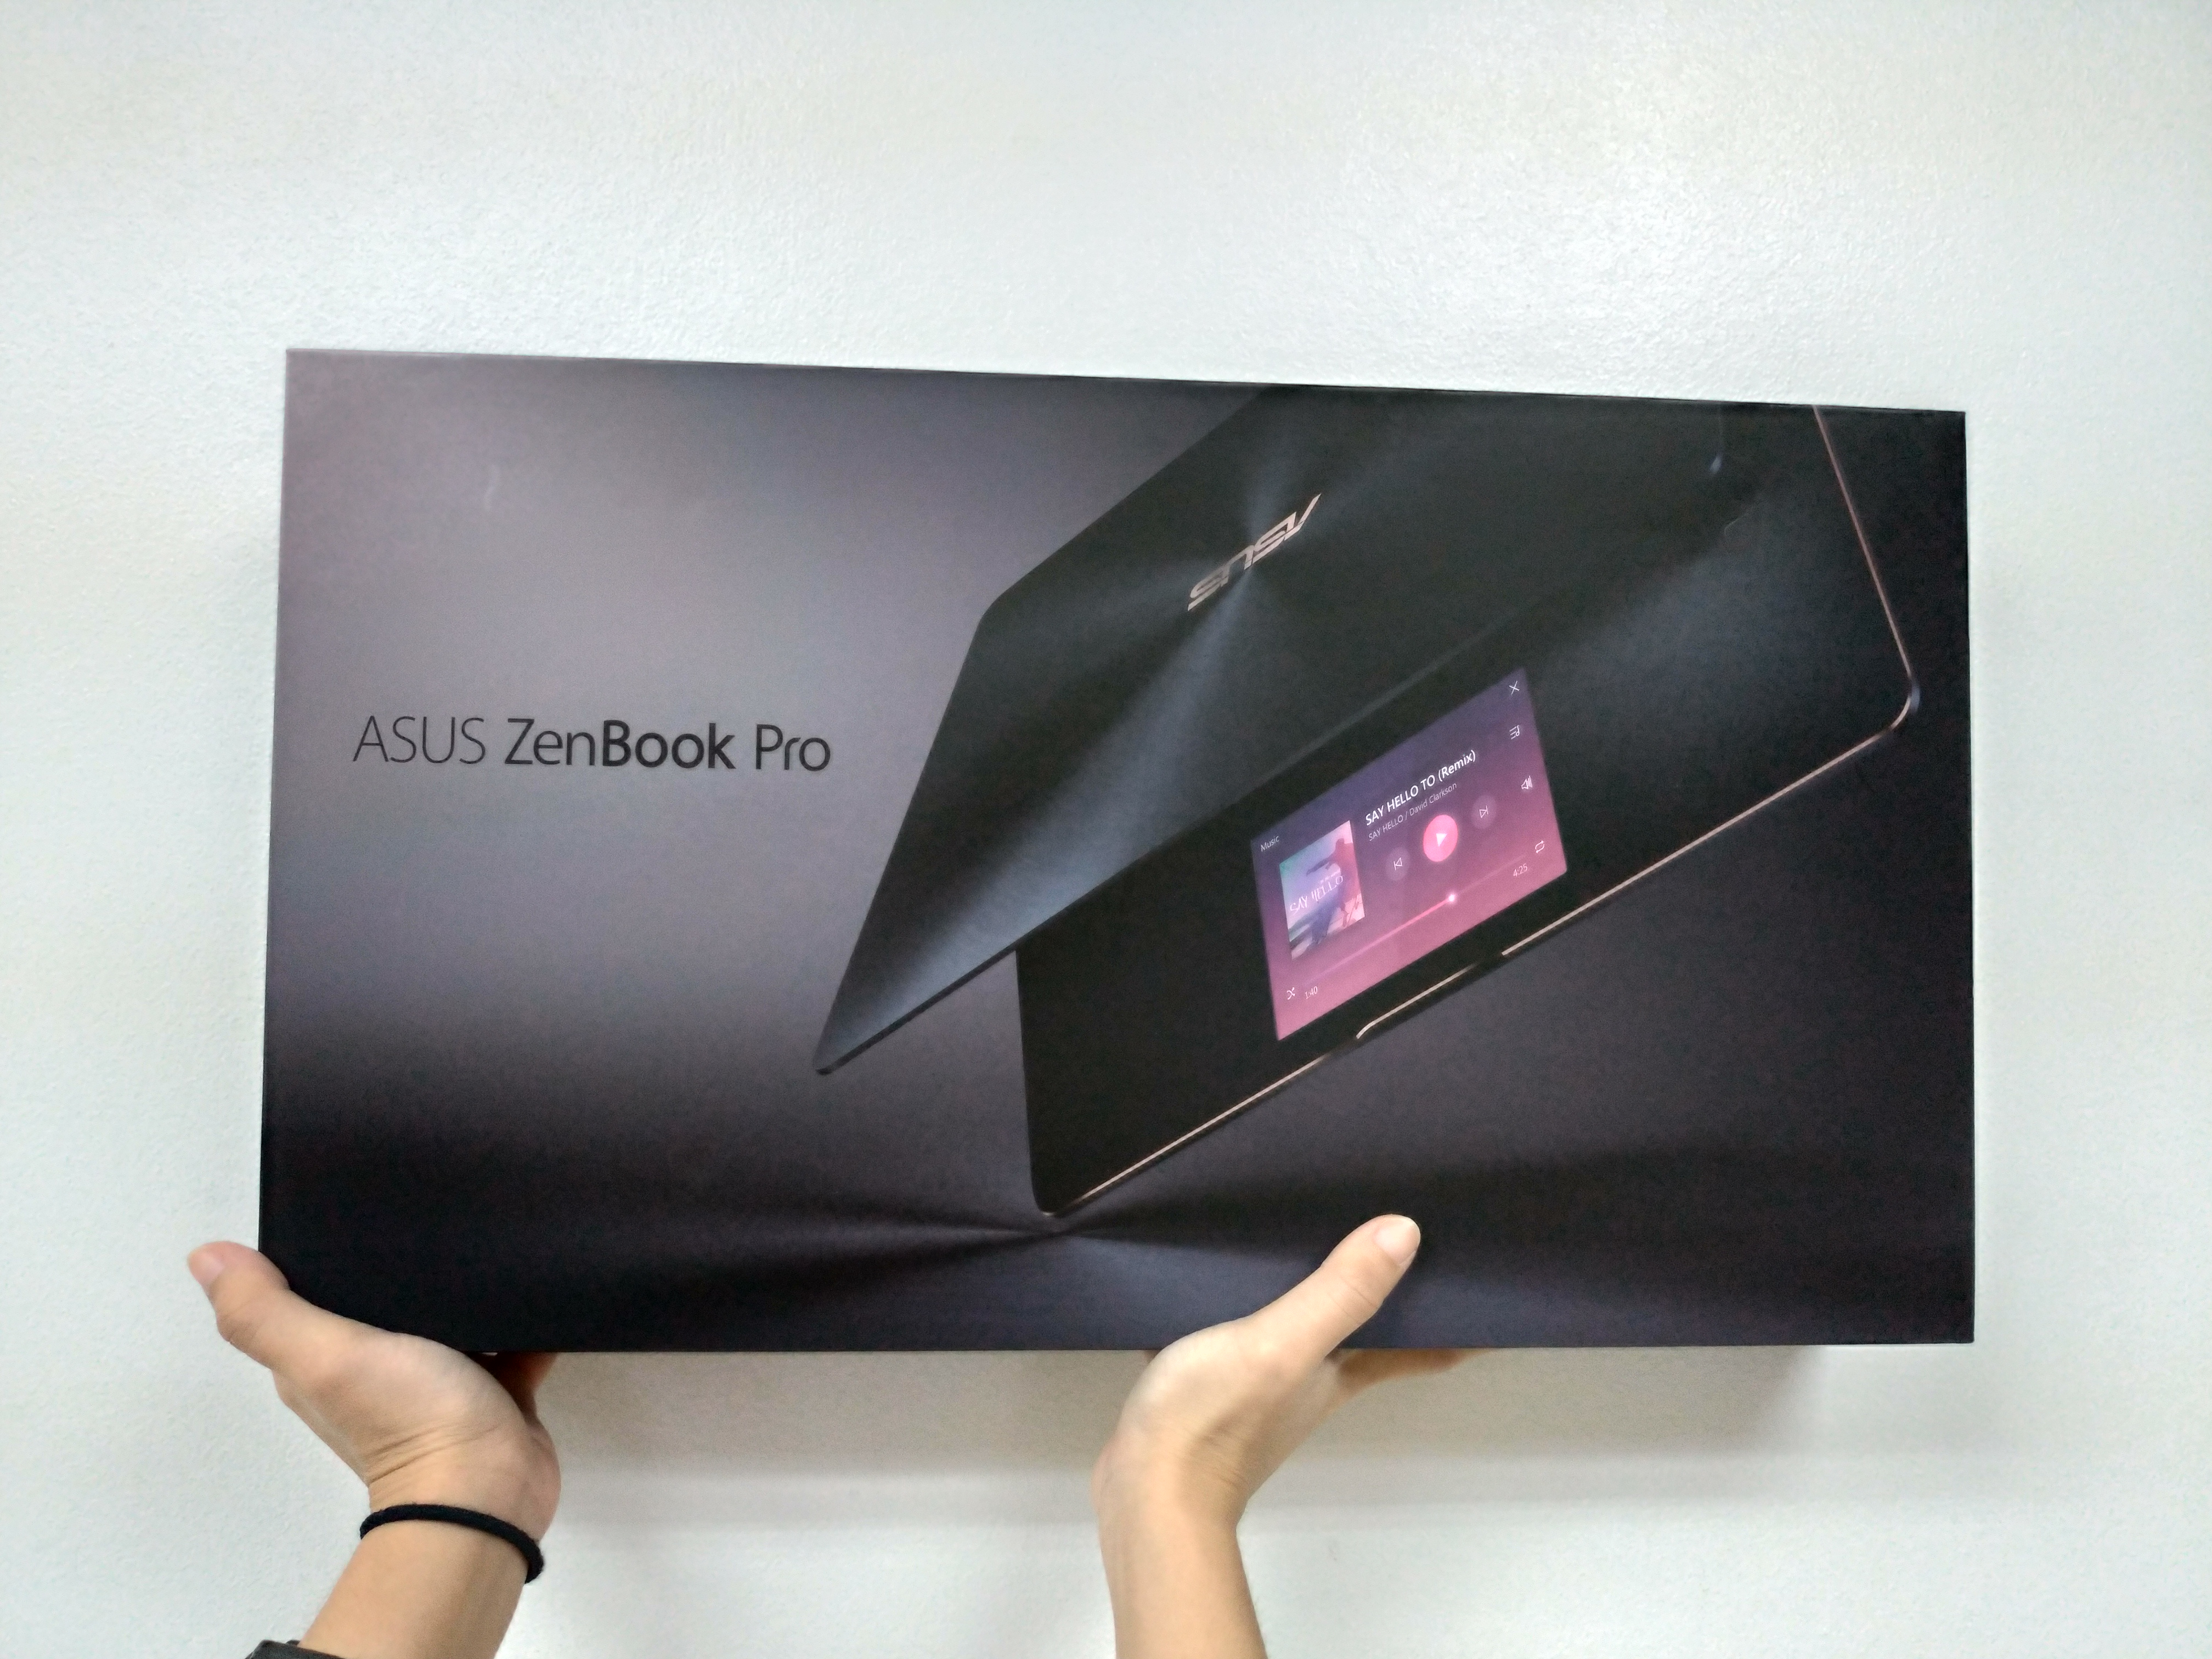 first-impressions-of-the-asus-zenbook-pro-ux580ge